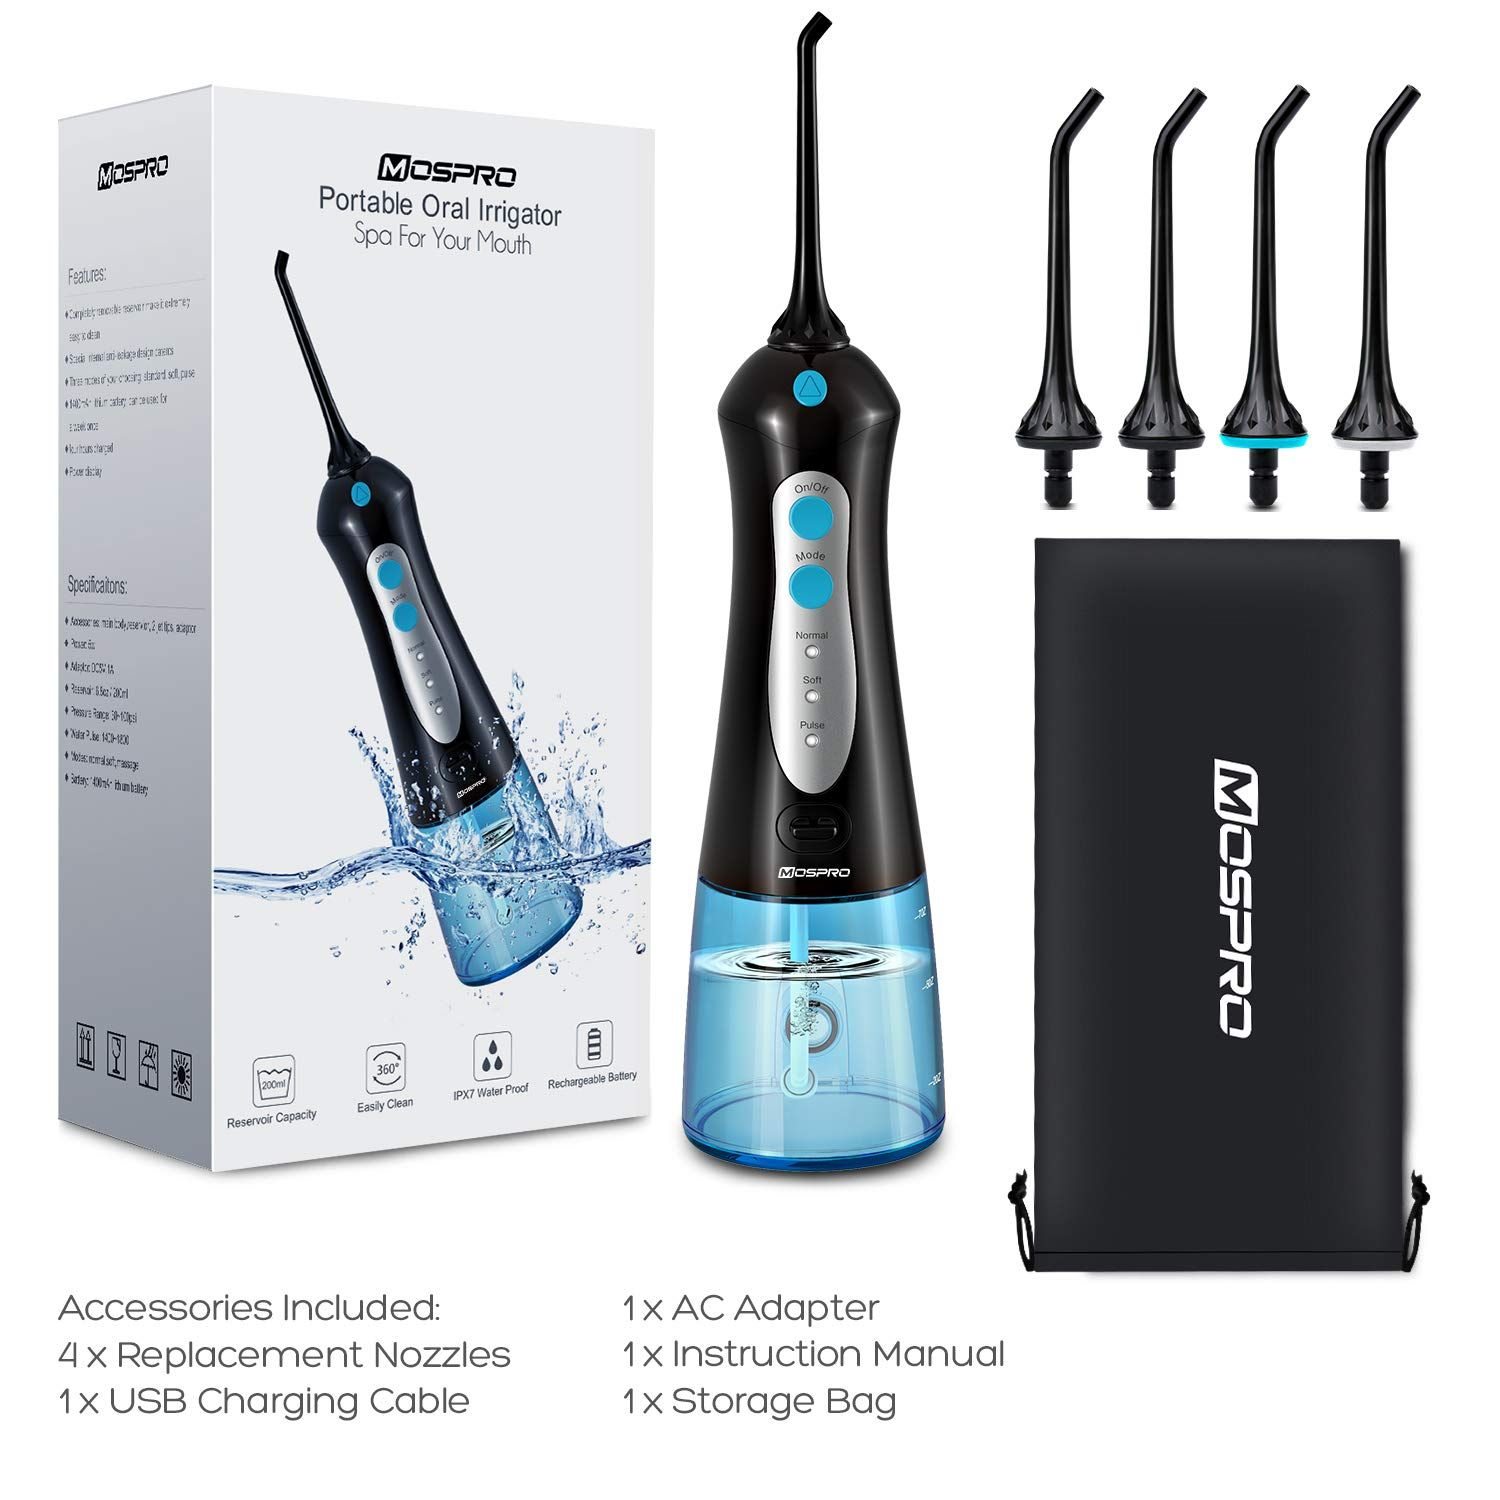 Water Flosser Professional Cordless Dental Oral Irrigator 300ml Portable And Rechargeable Ipx7 Water Flosser Flosser Oral